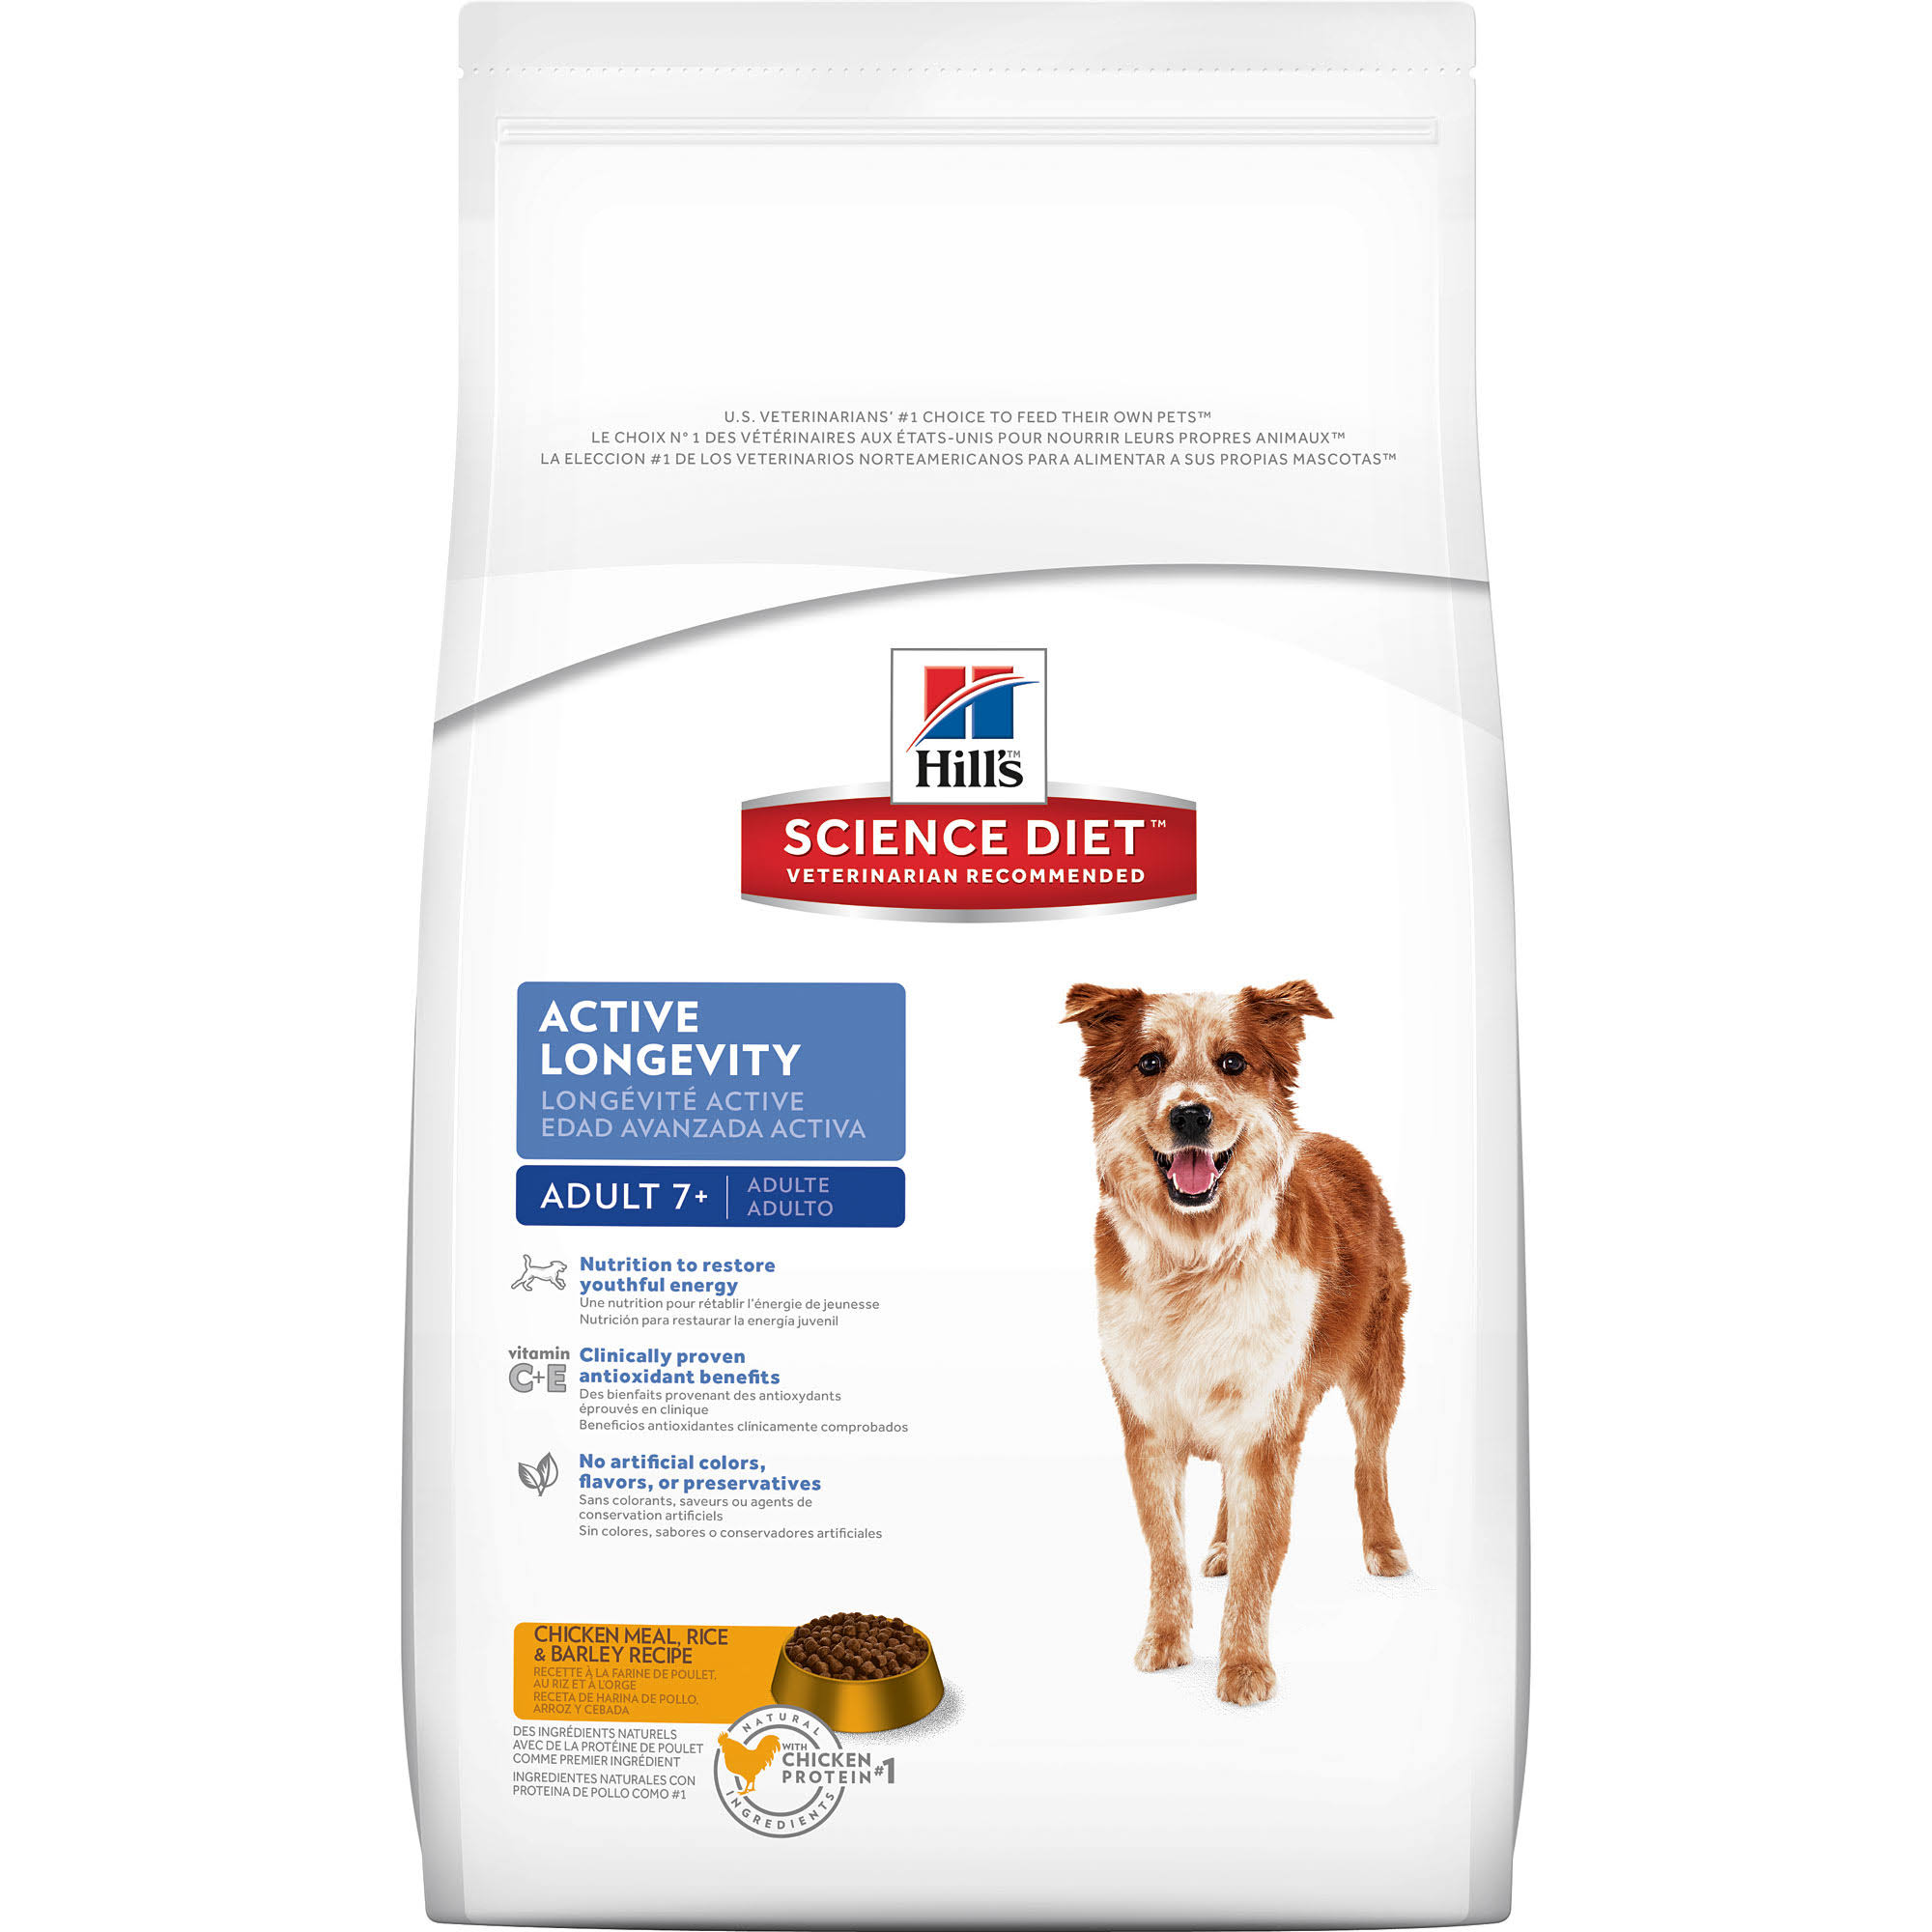 Hill's Science Diet Active Longevity Dog Food - Adult 7+, Chicken Meal Rice & Barley Recipe, 33lb